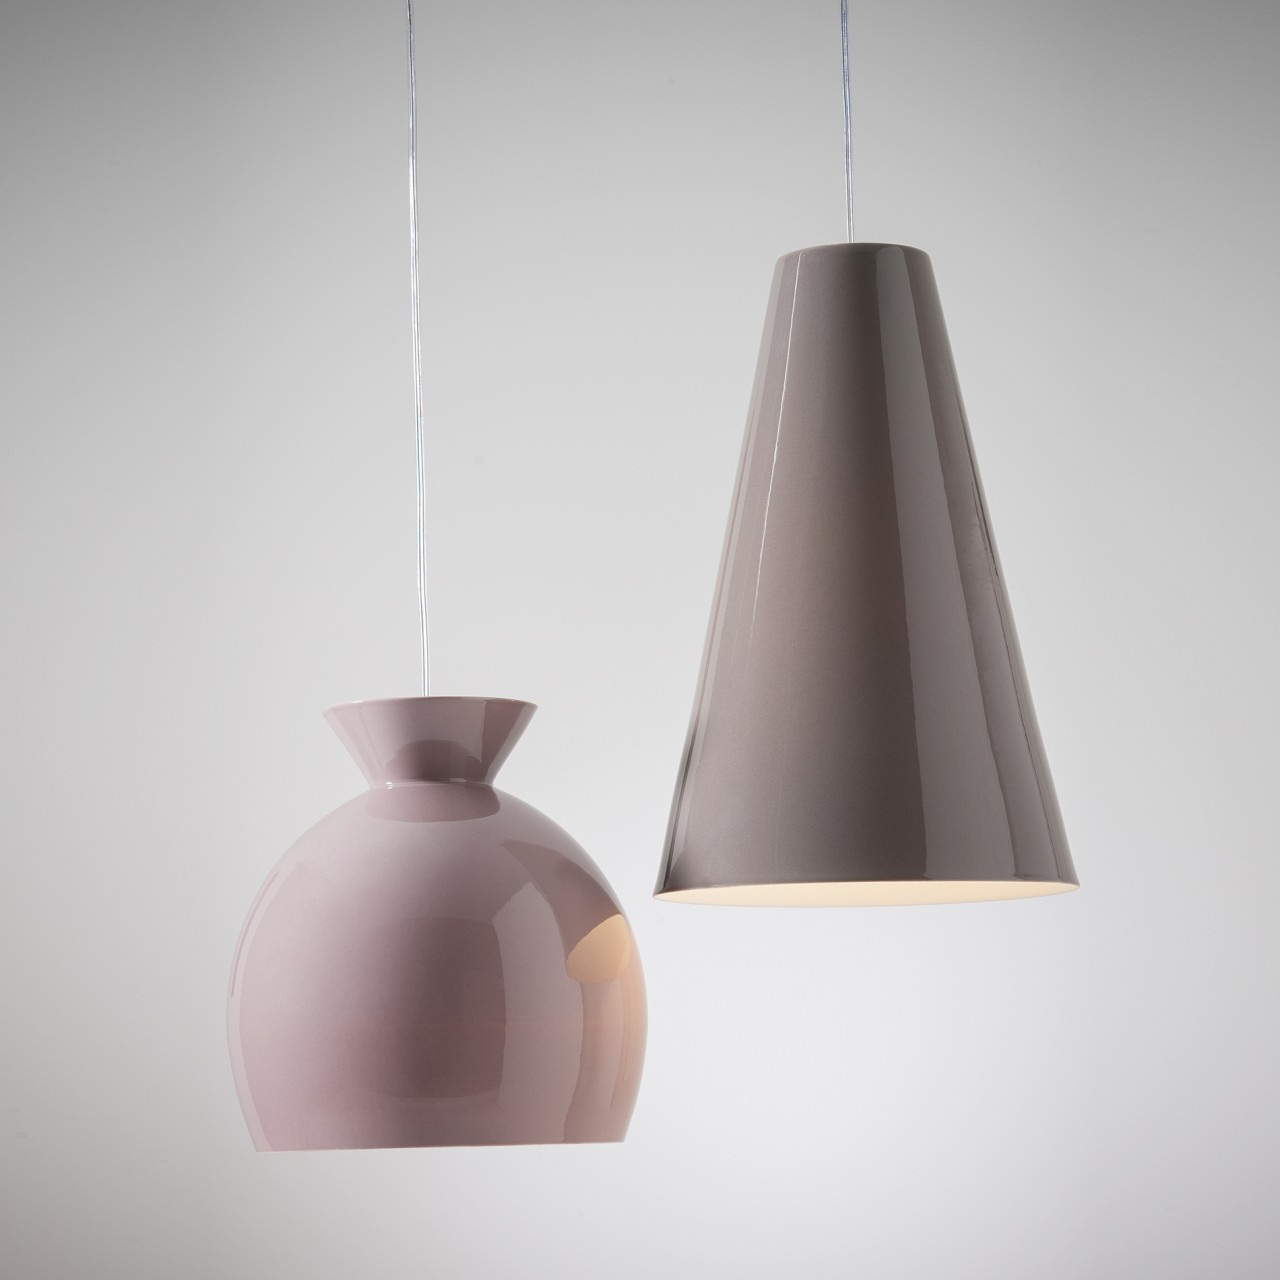 Conemporary pendant lamps in glossy pink